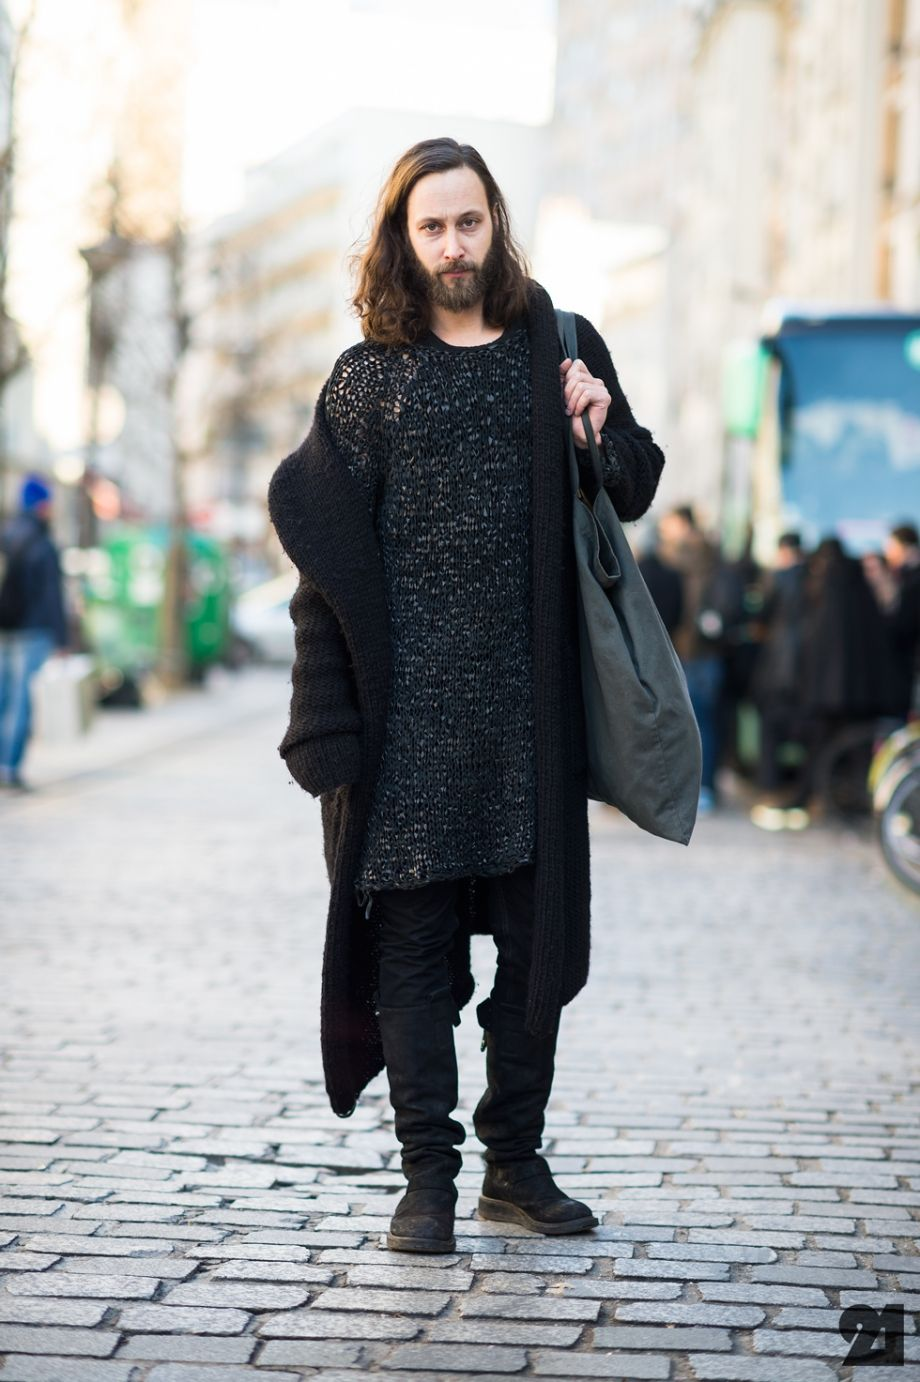 Flannel outfits black men  Love it  streetstyle oversized mensfashion  Letus Wear This